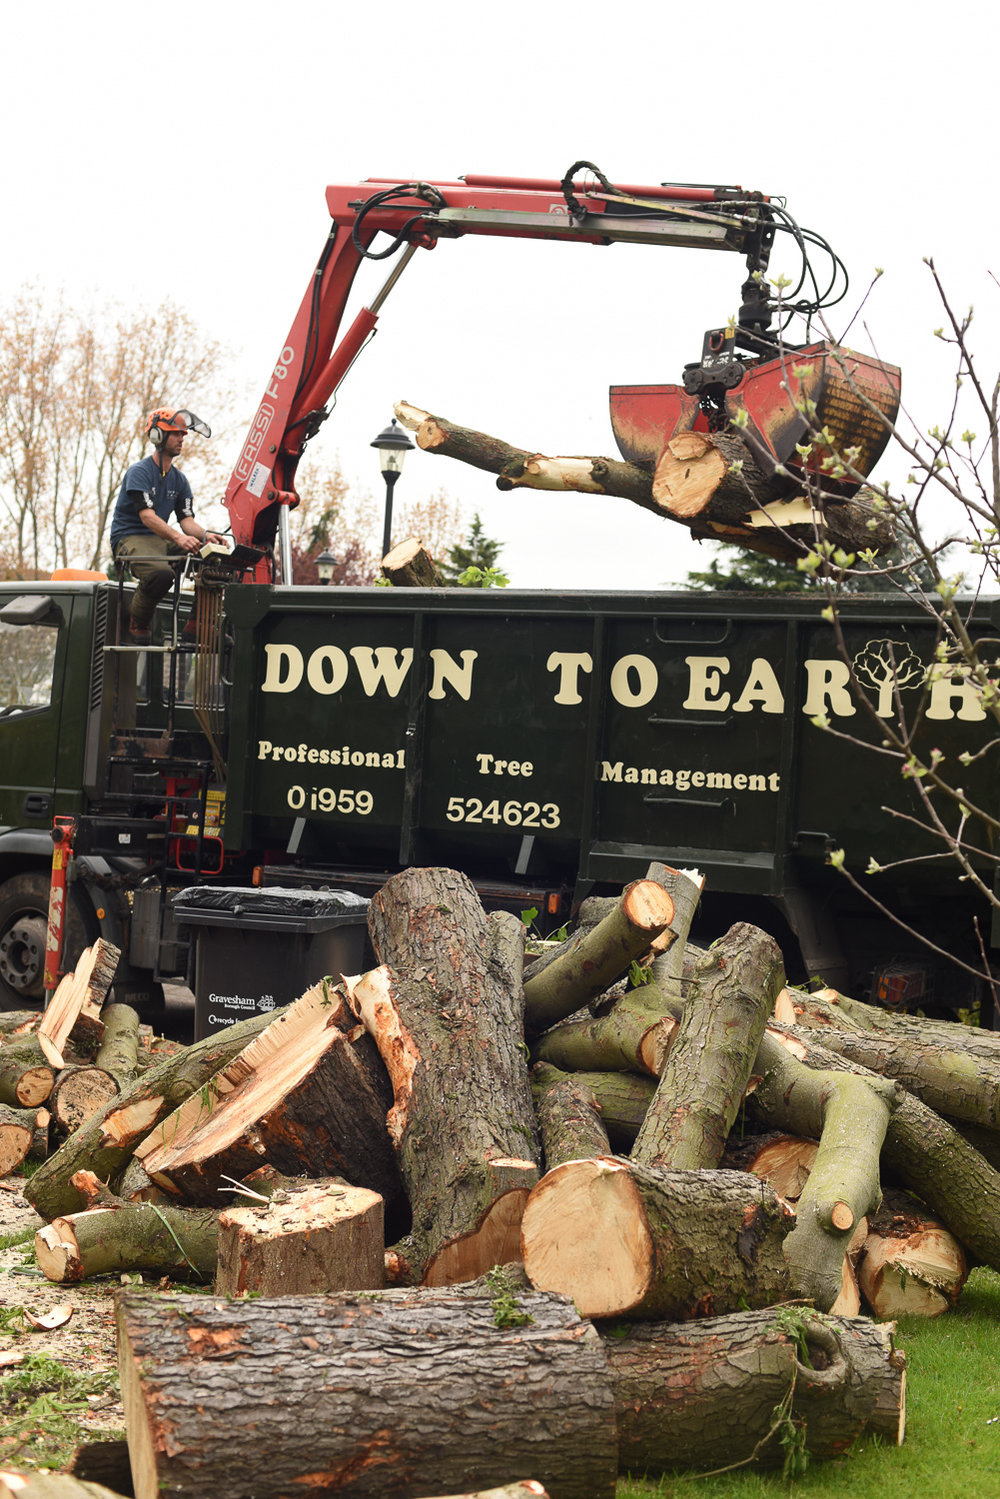 Tree Surgeon and Maintenance Services in Keston